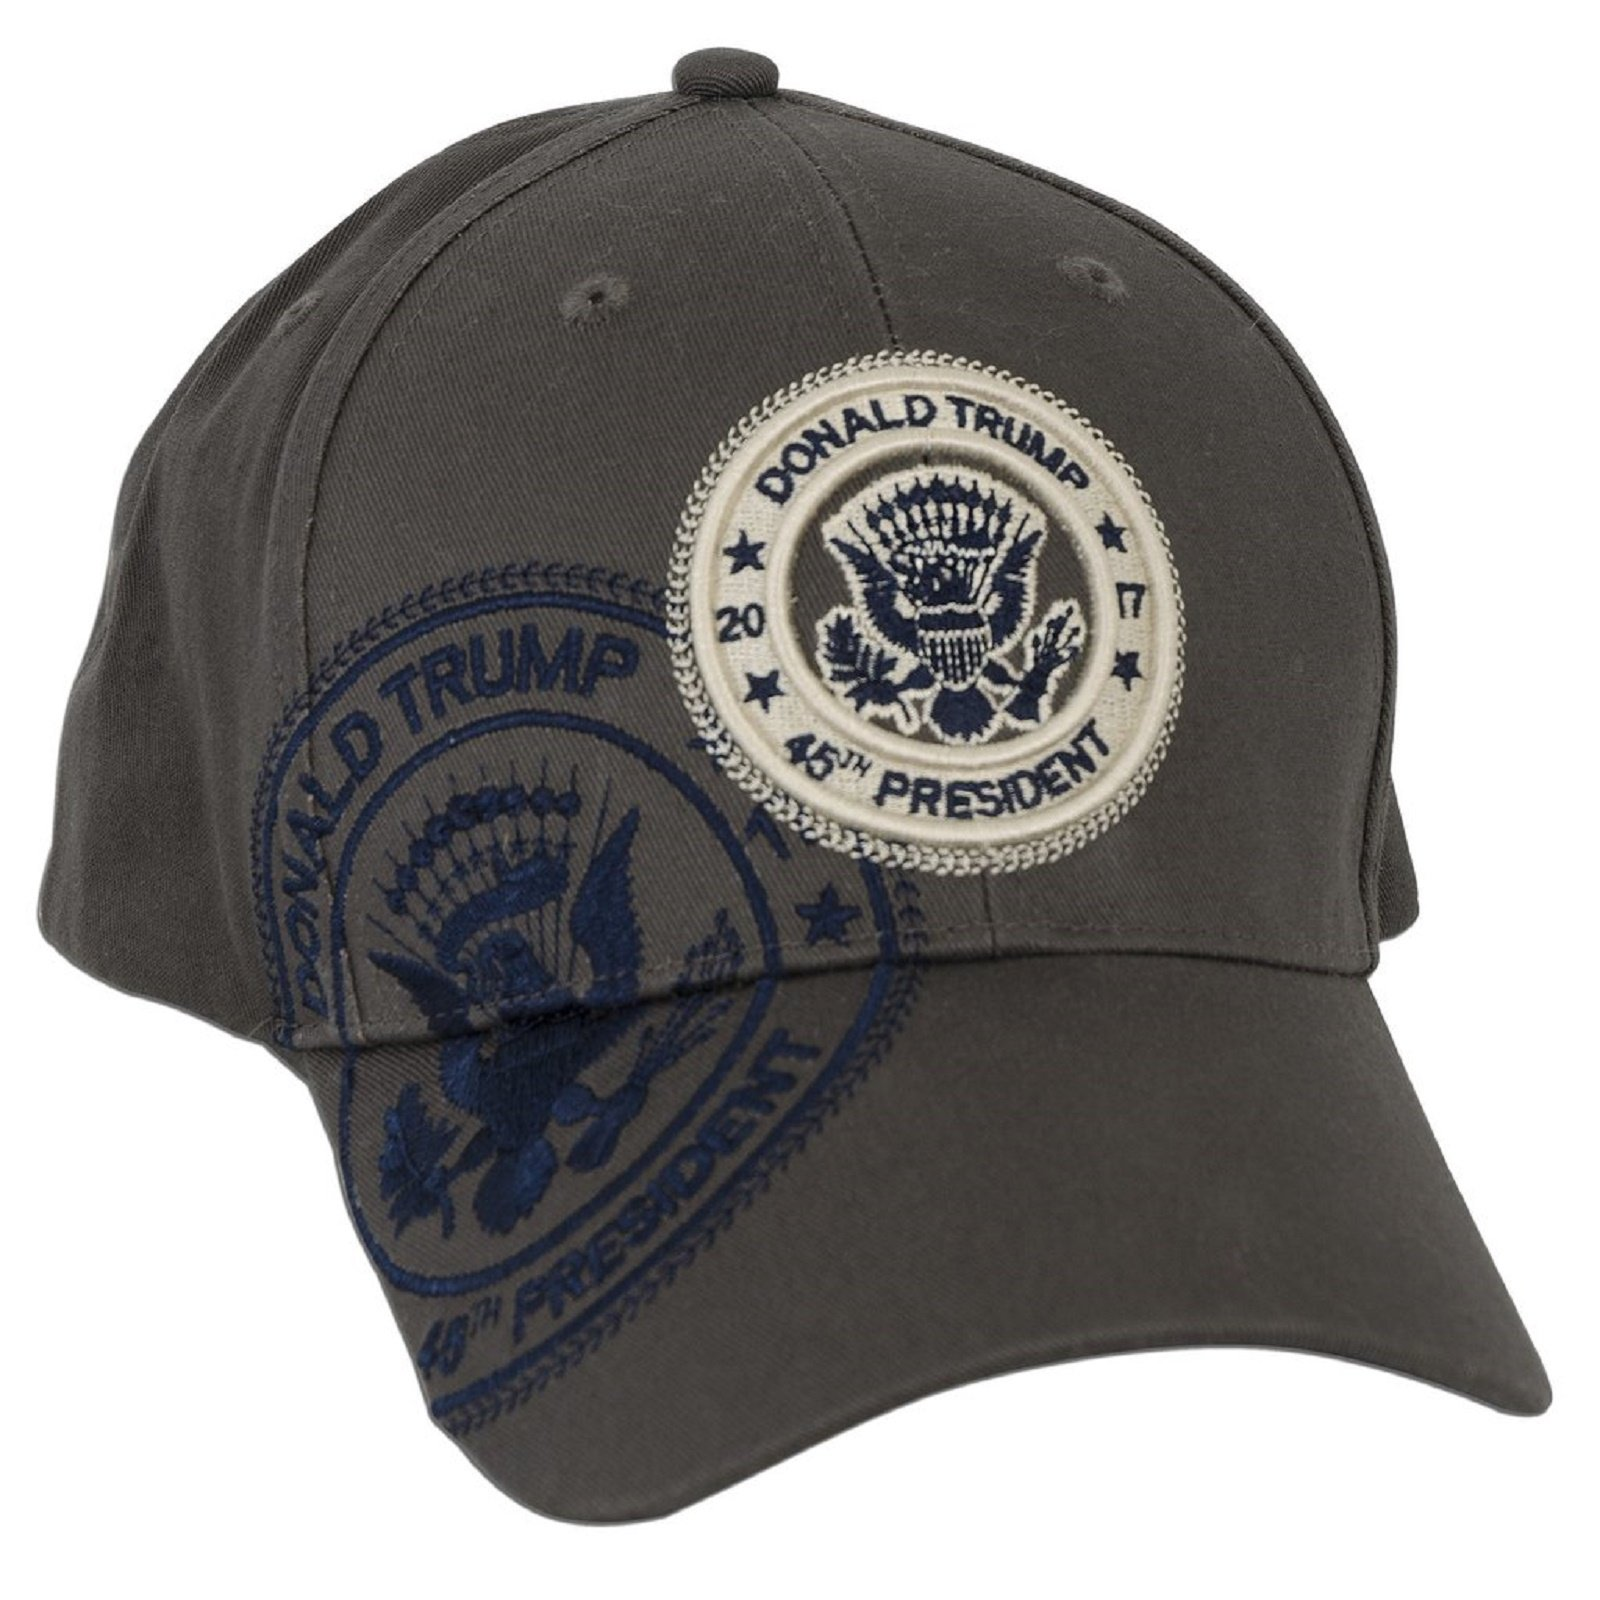 Donald Trump 45th President Grey Hat